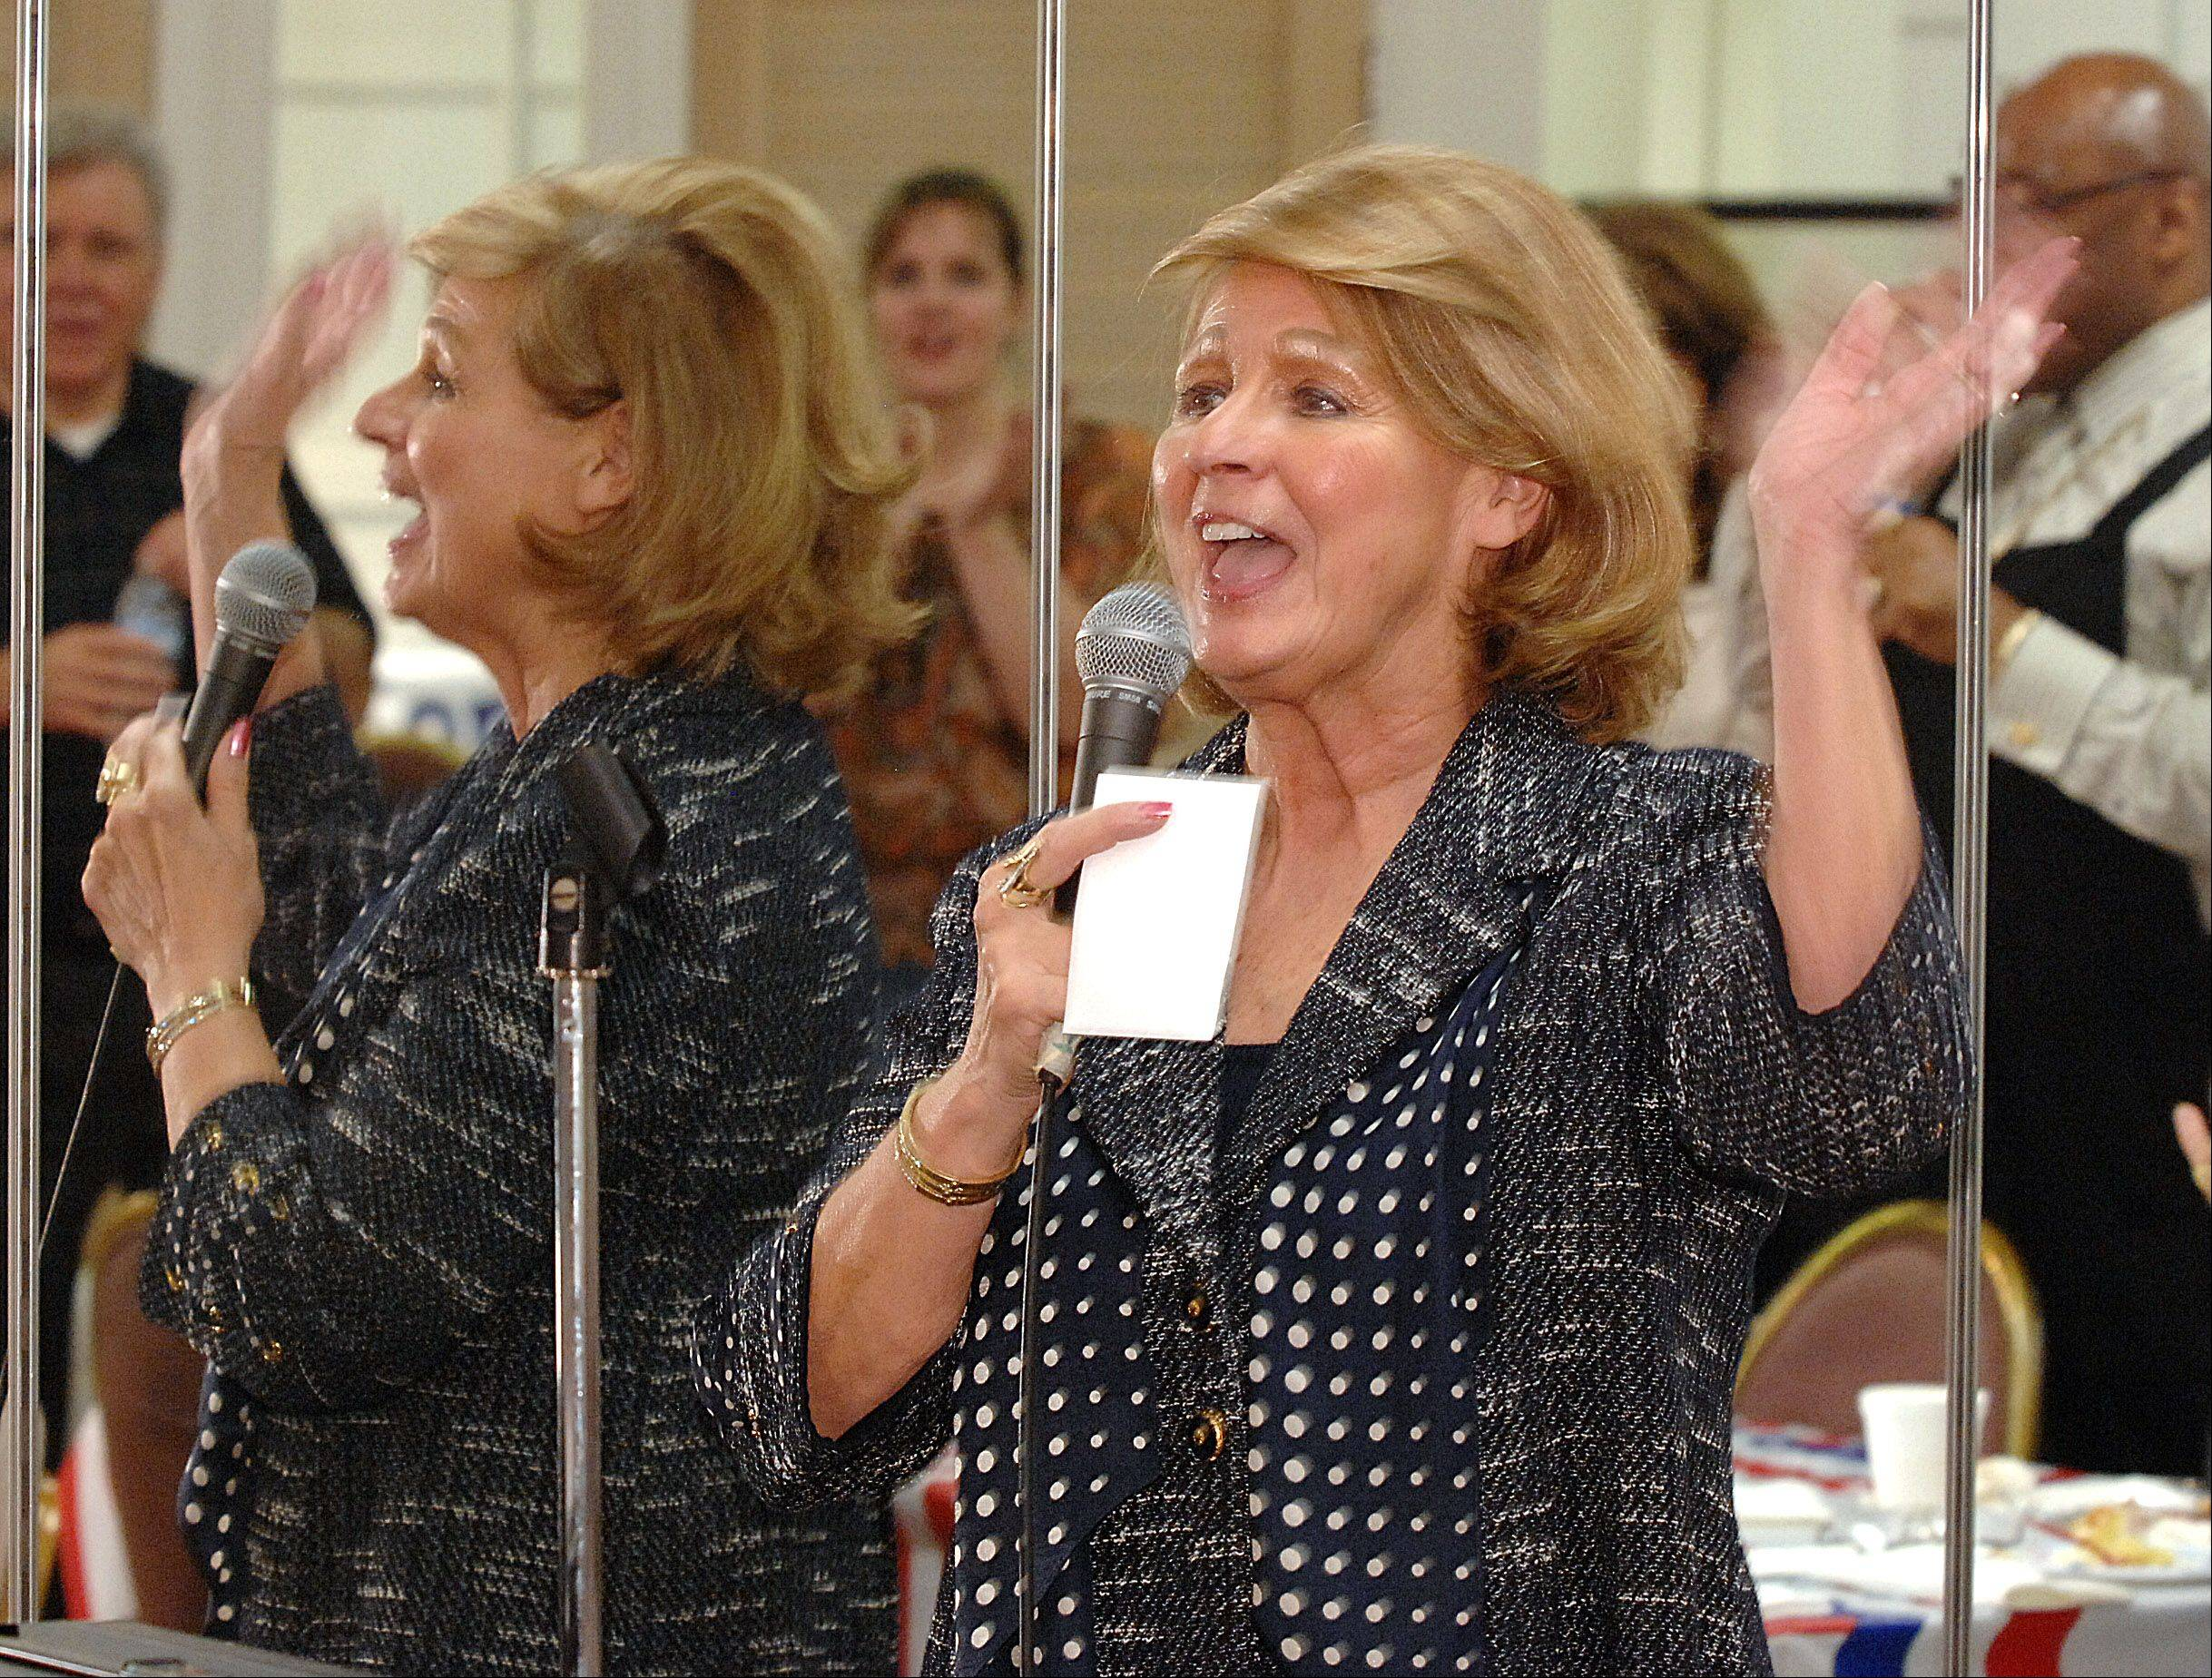 State Sen. Carole Pankau gives her victory speech at the Bloomingdale Township Republican headquarters after winning the Republican primary election in the 23rd Senate District.